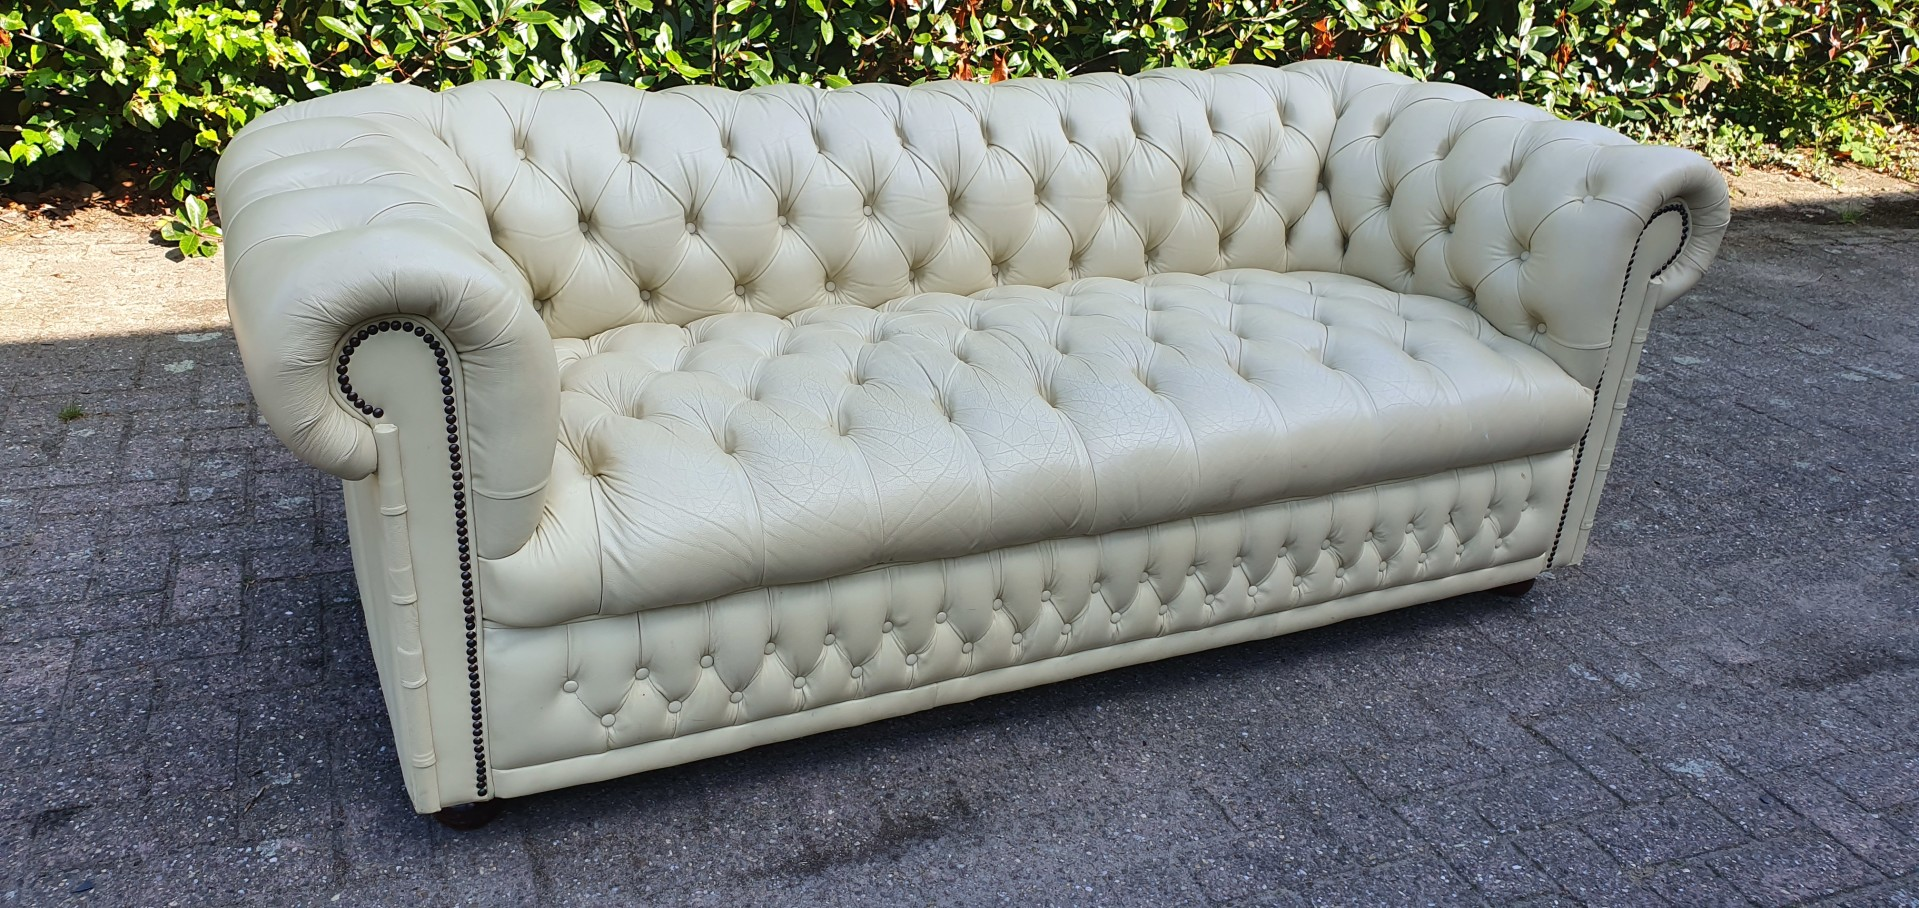 Creme Leren Bankstel.Orginele Creme Lederen Chesterfield Button Seat 3zits Bank